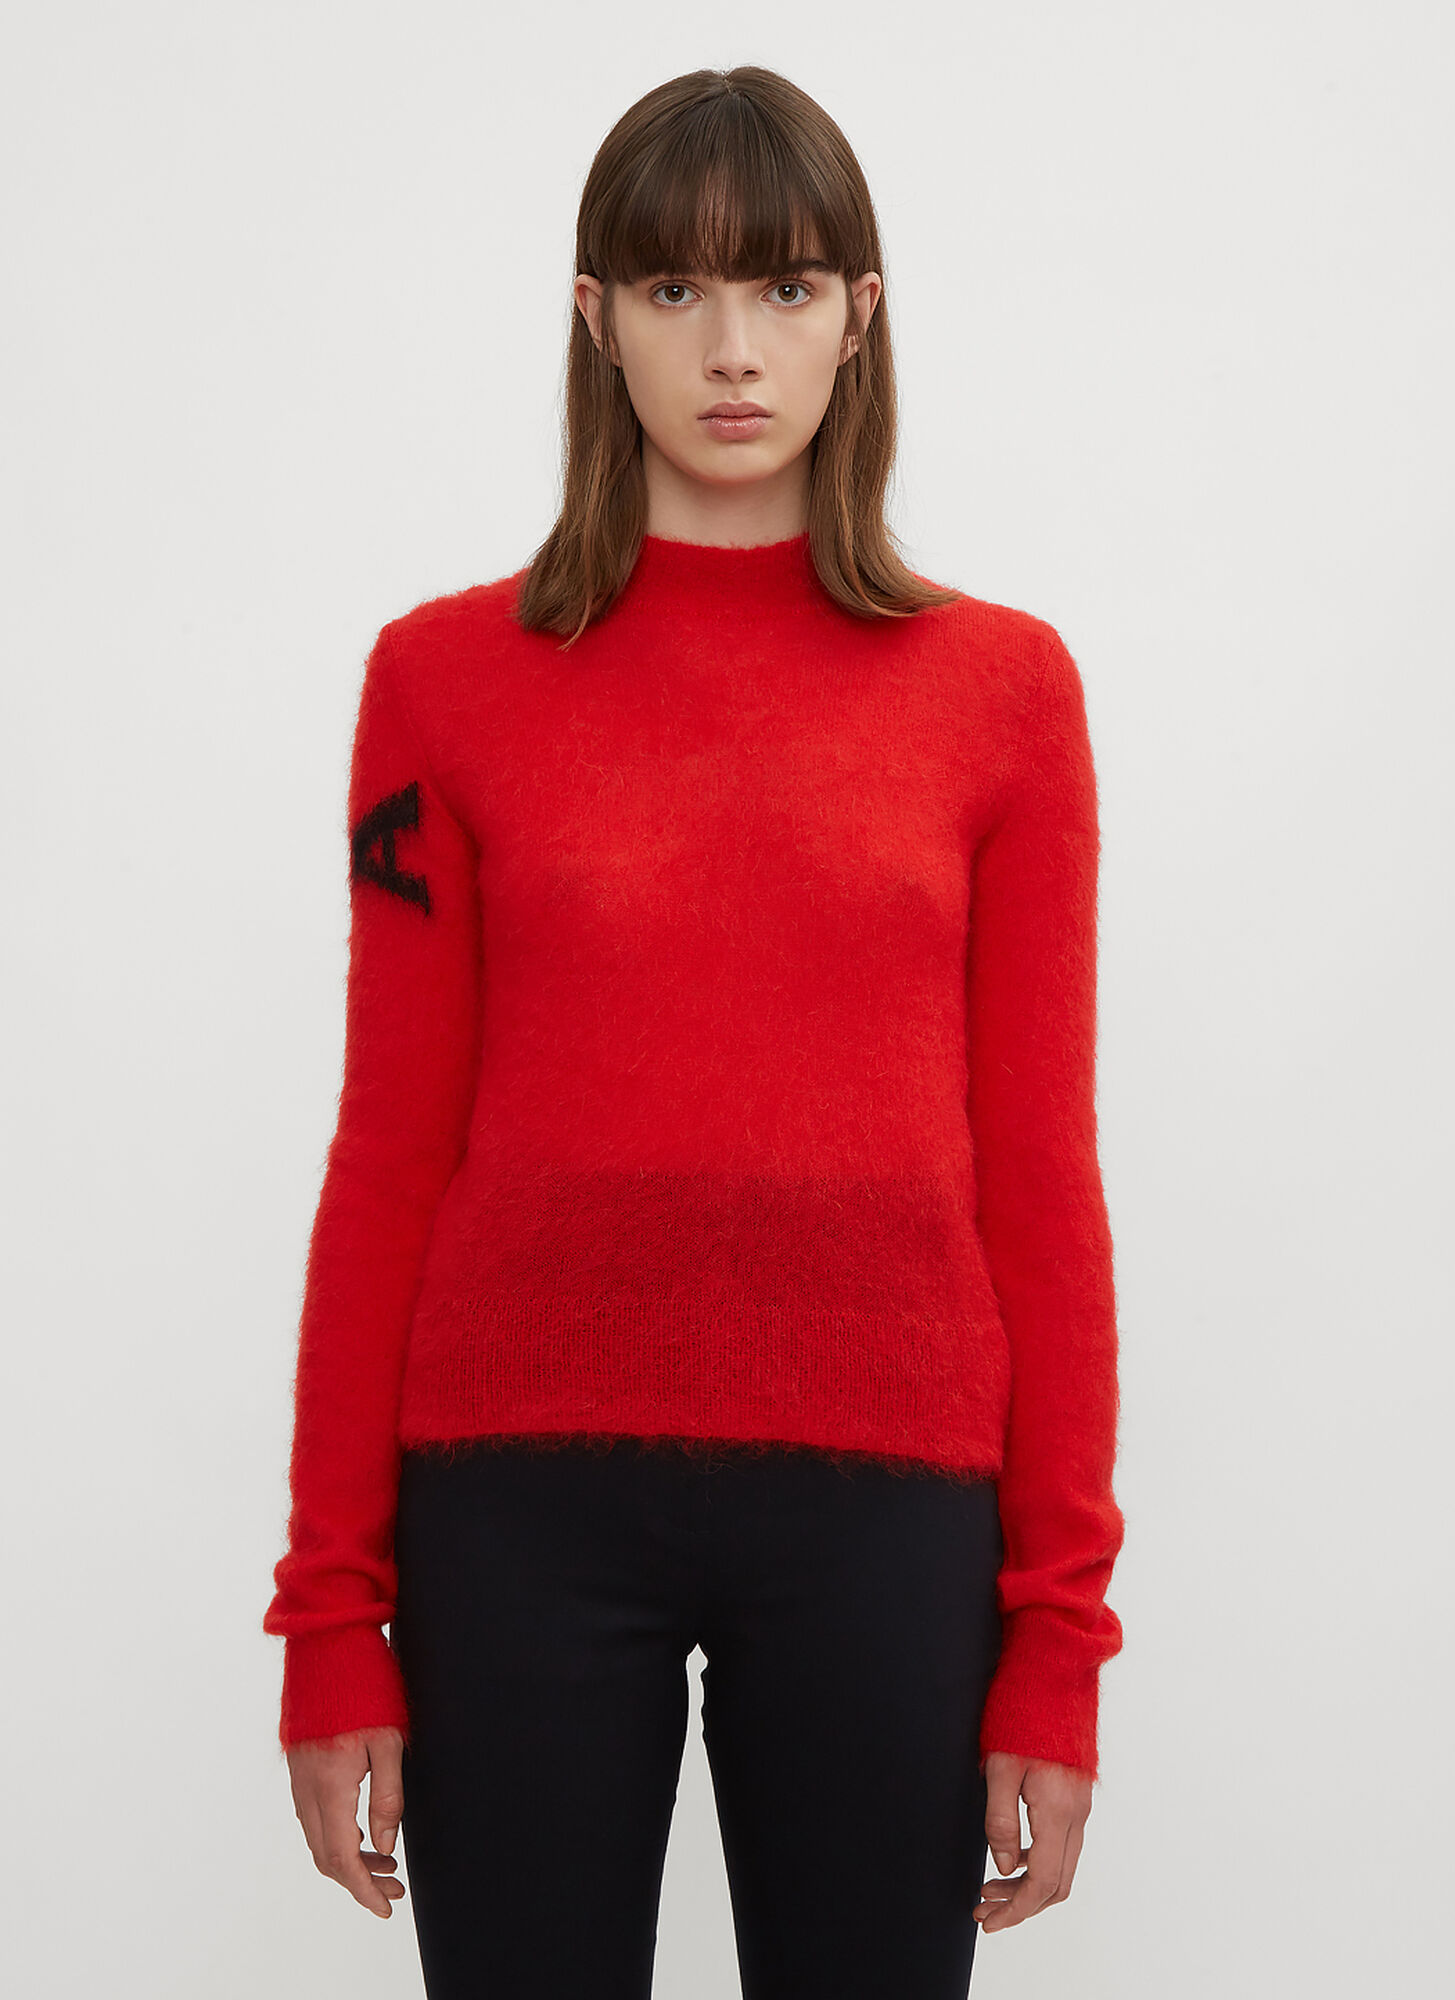 1017 ALYX 9SM Judy Mohair Sweater in Red size S